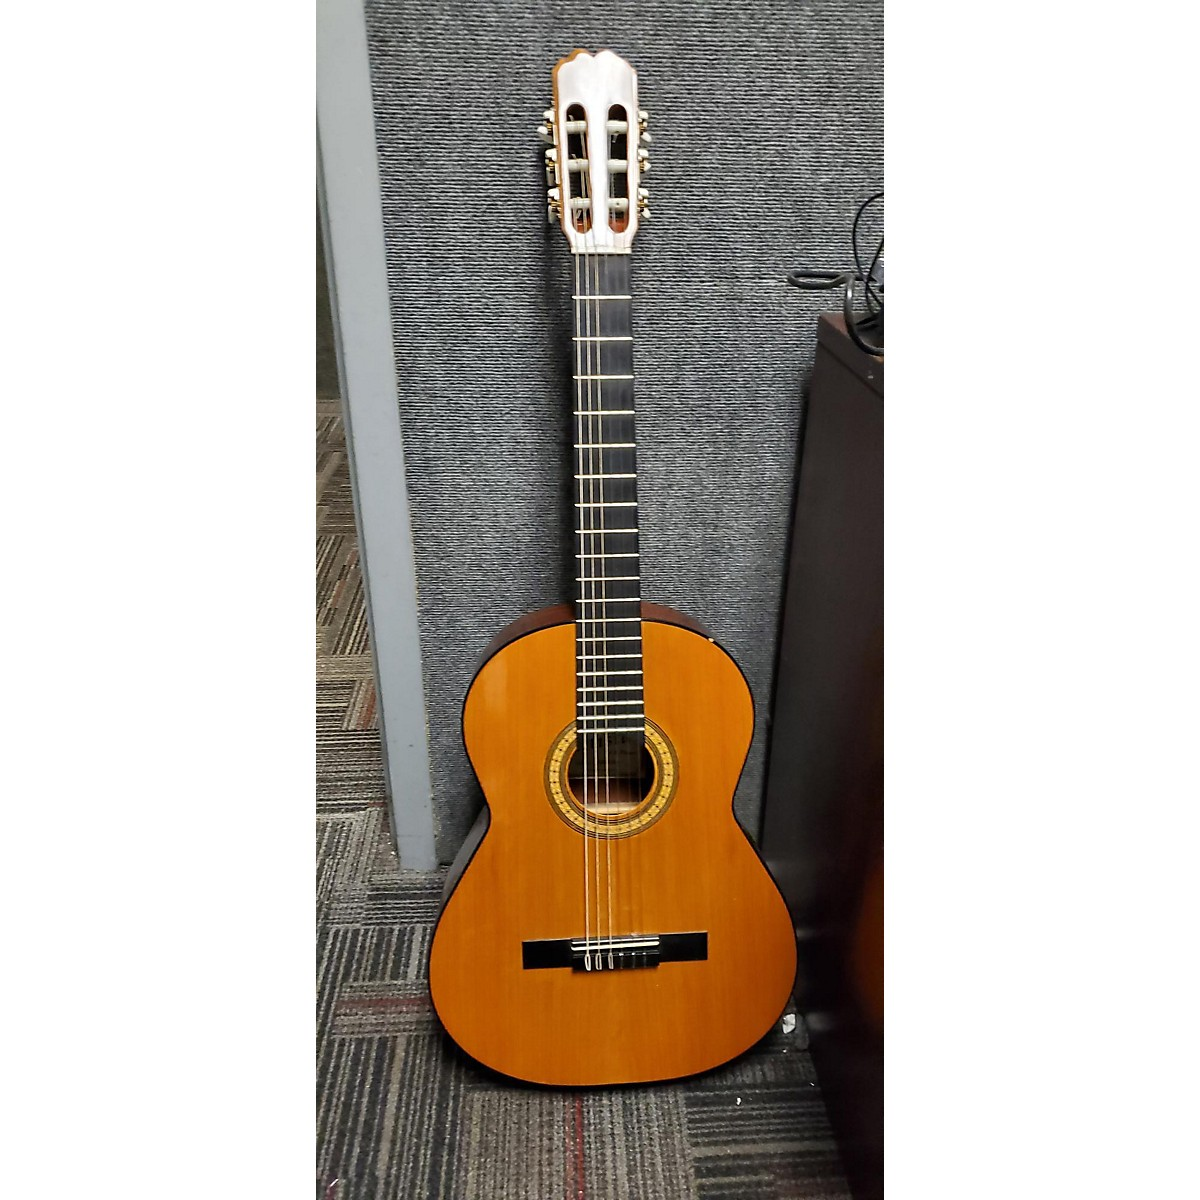 JB Player GRANADA Classical Acoustic Guitar